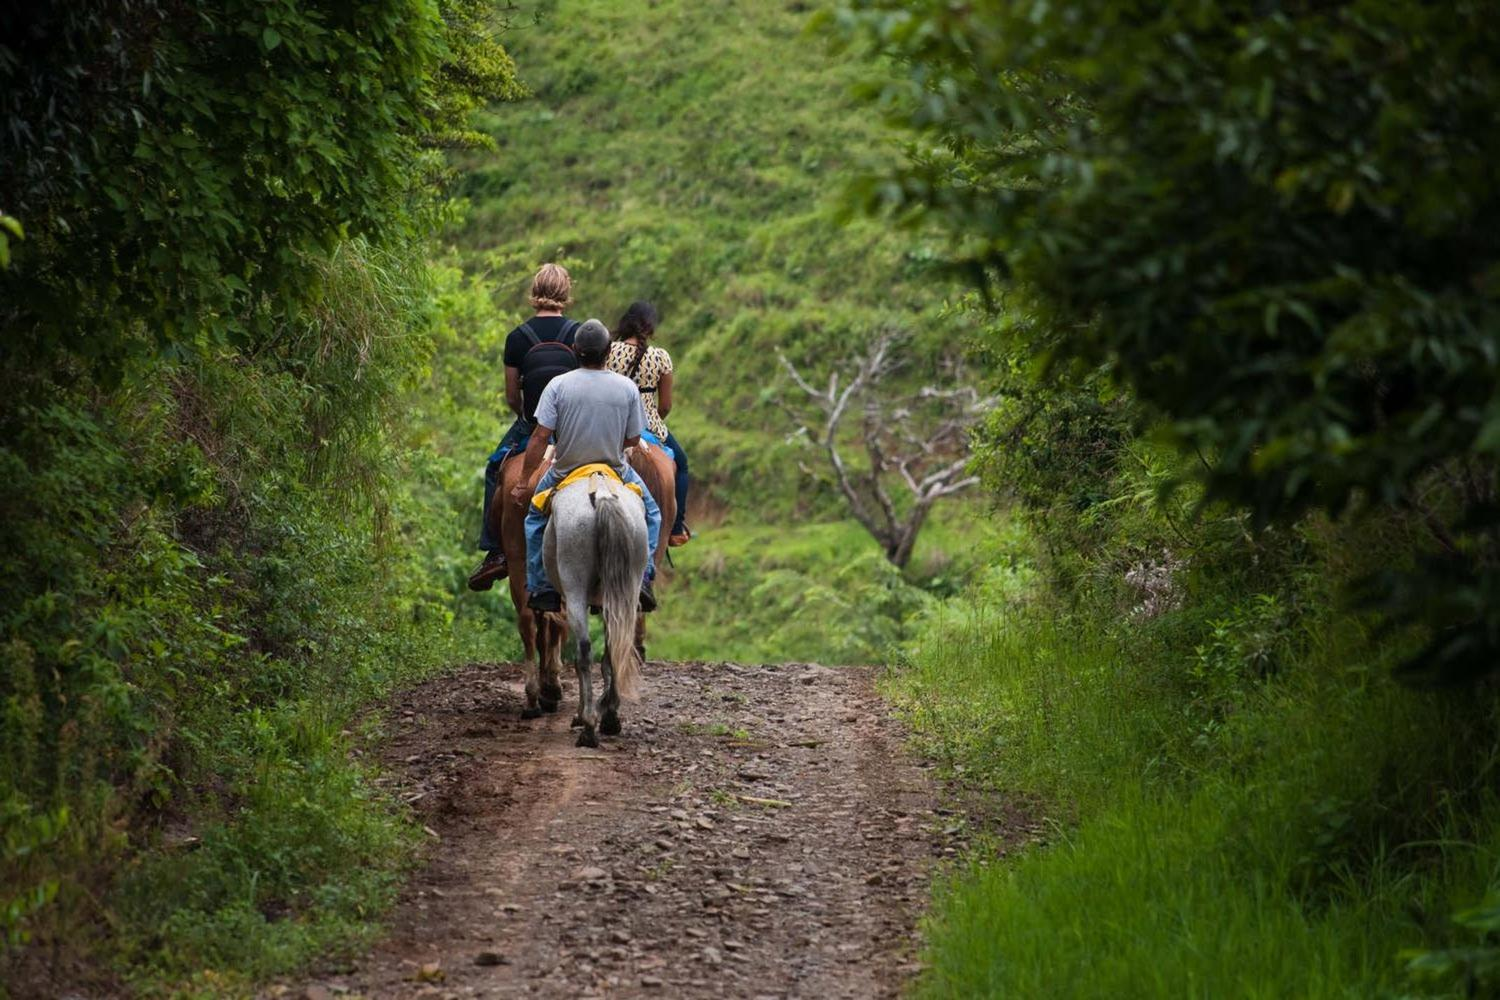 Horse riding in the Monteverde cloud forest